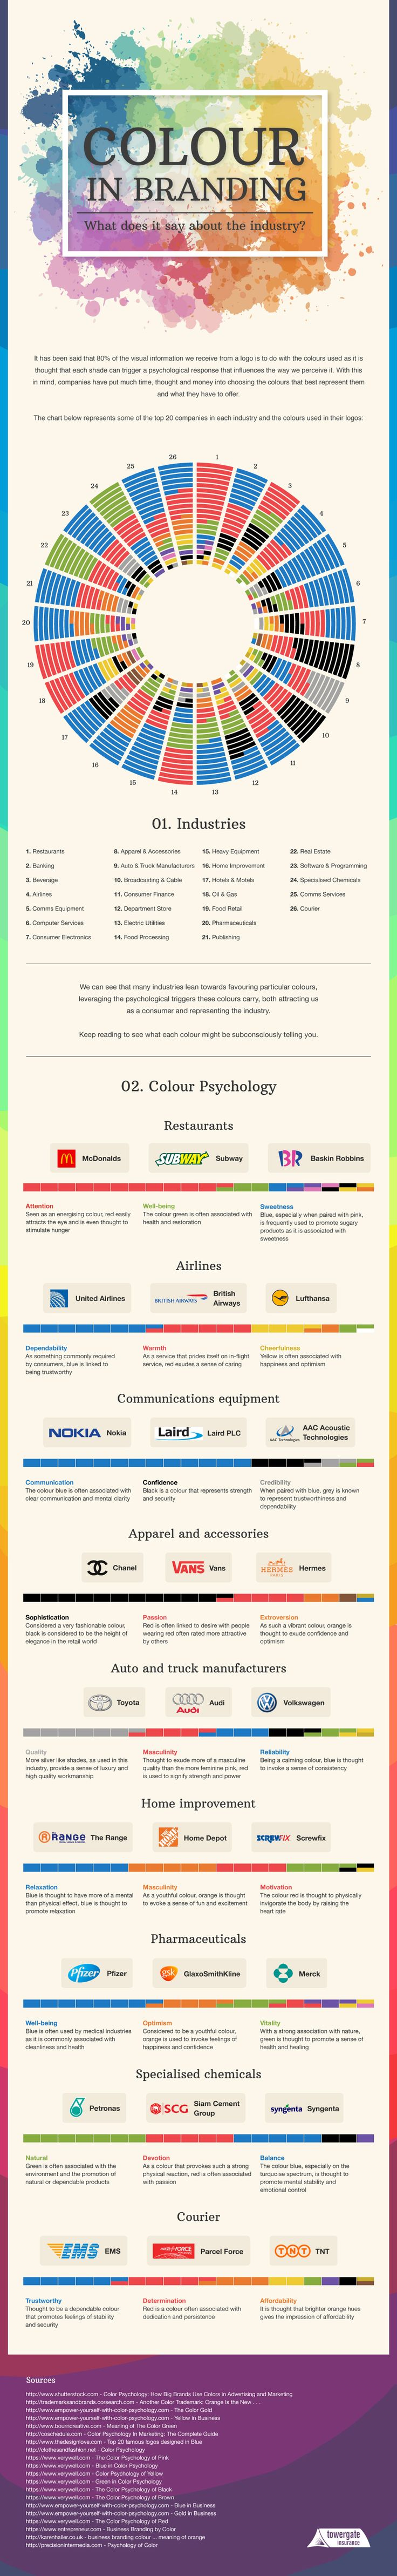 Colour & Branding What Colours Should Your Business Use - @redwebdesign